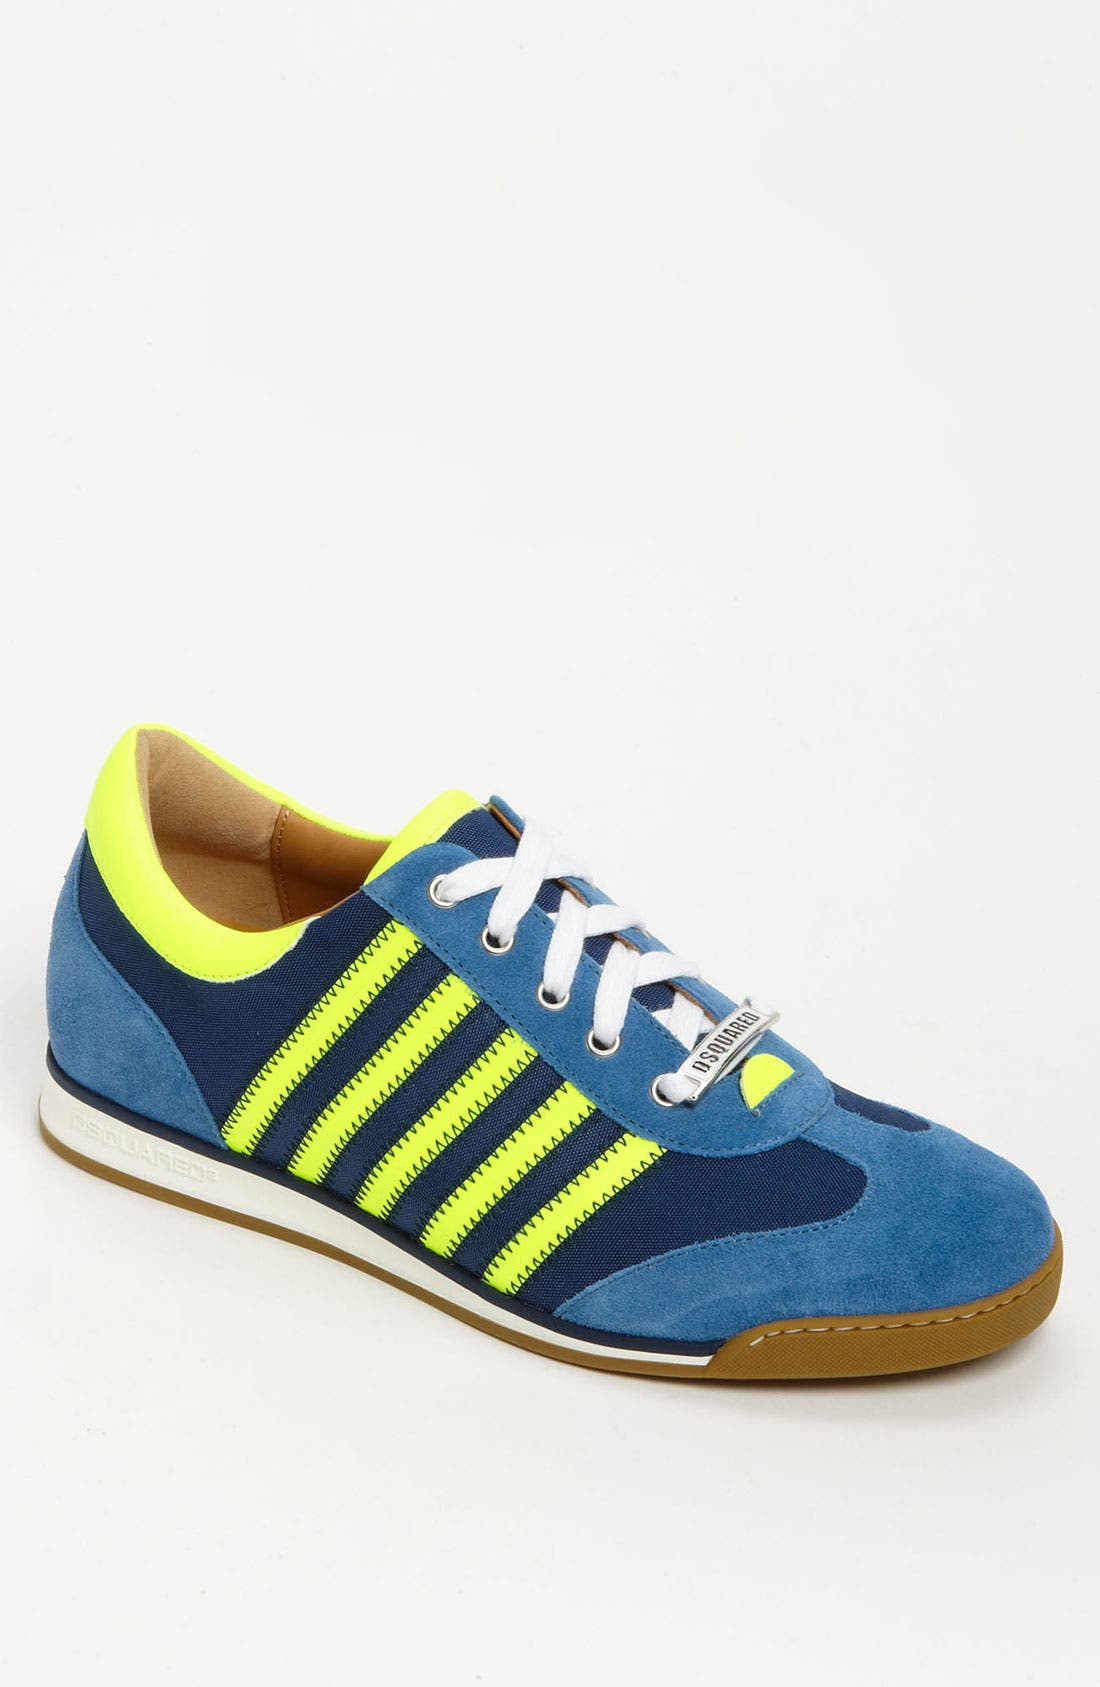 Alternate Image 1 Selected - Dsquared2 '419T' Sneaker